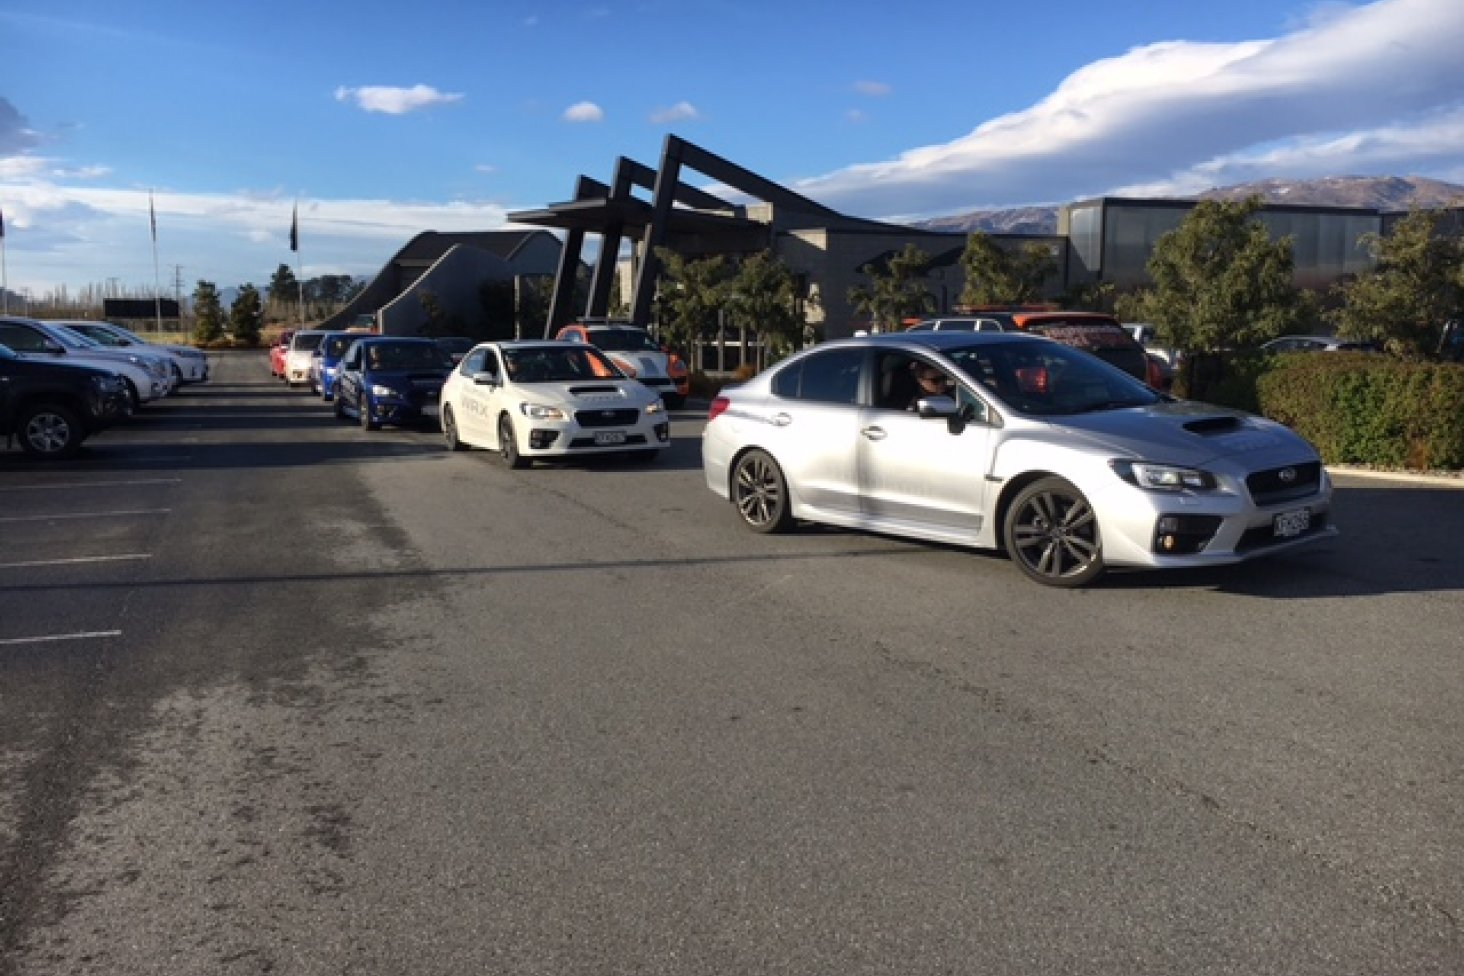 The Mission Impossible 6 cast and crew recently enjoyed a day participating in the Subaru WRX Experience at Highlands Motorsport Park.